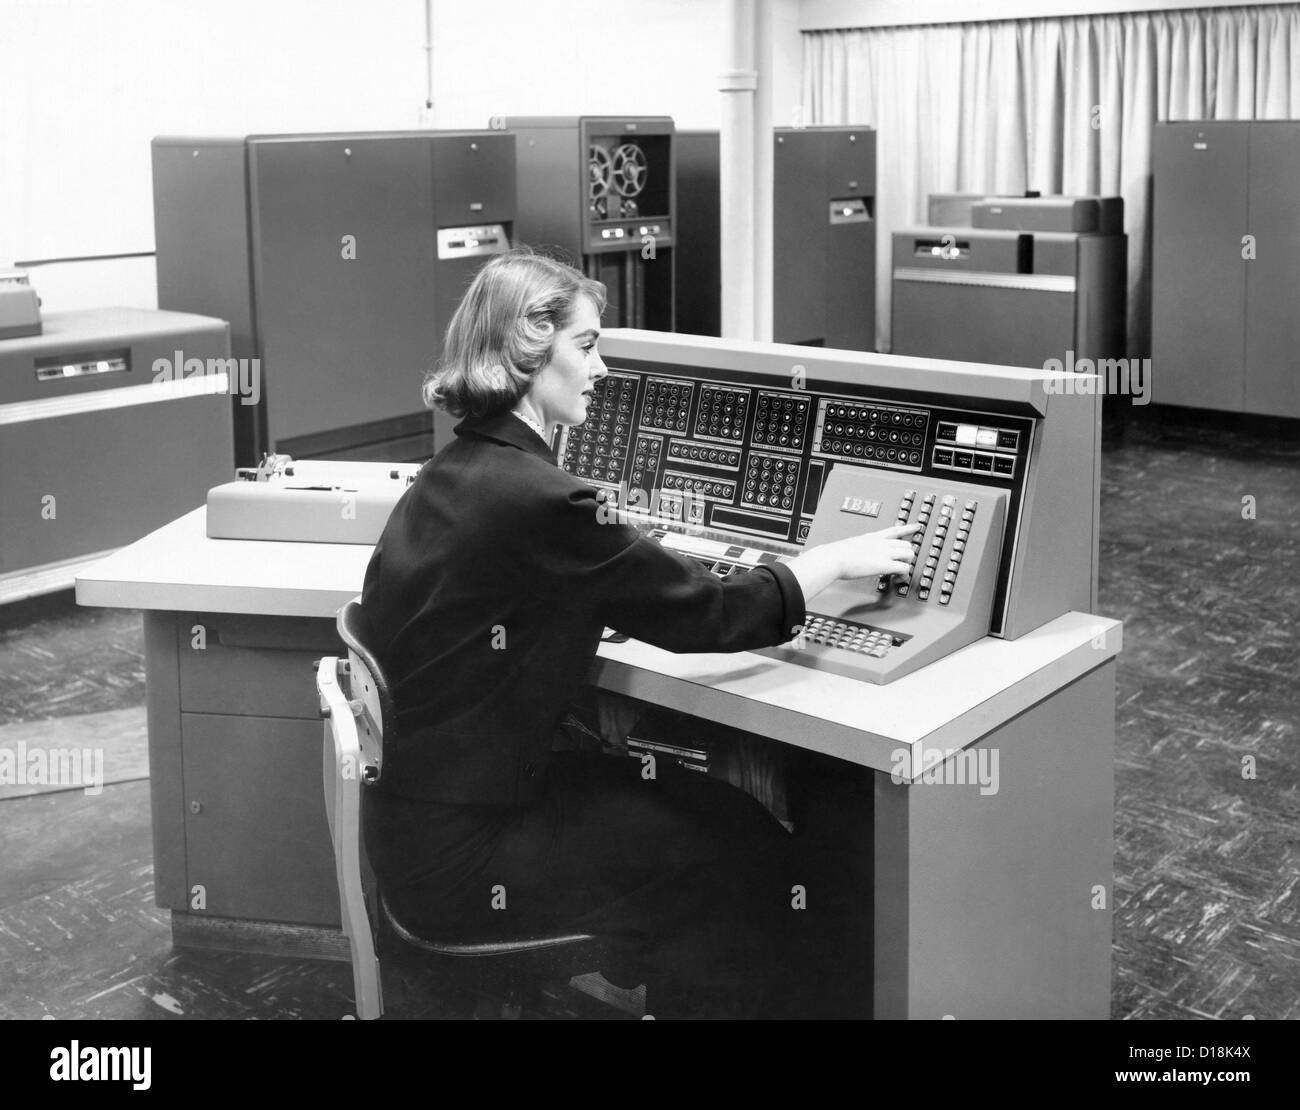 IBM 702, was a giant brain designed for business. From the operator's console, supervision was maintained over - Stock Image